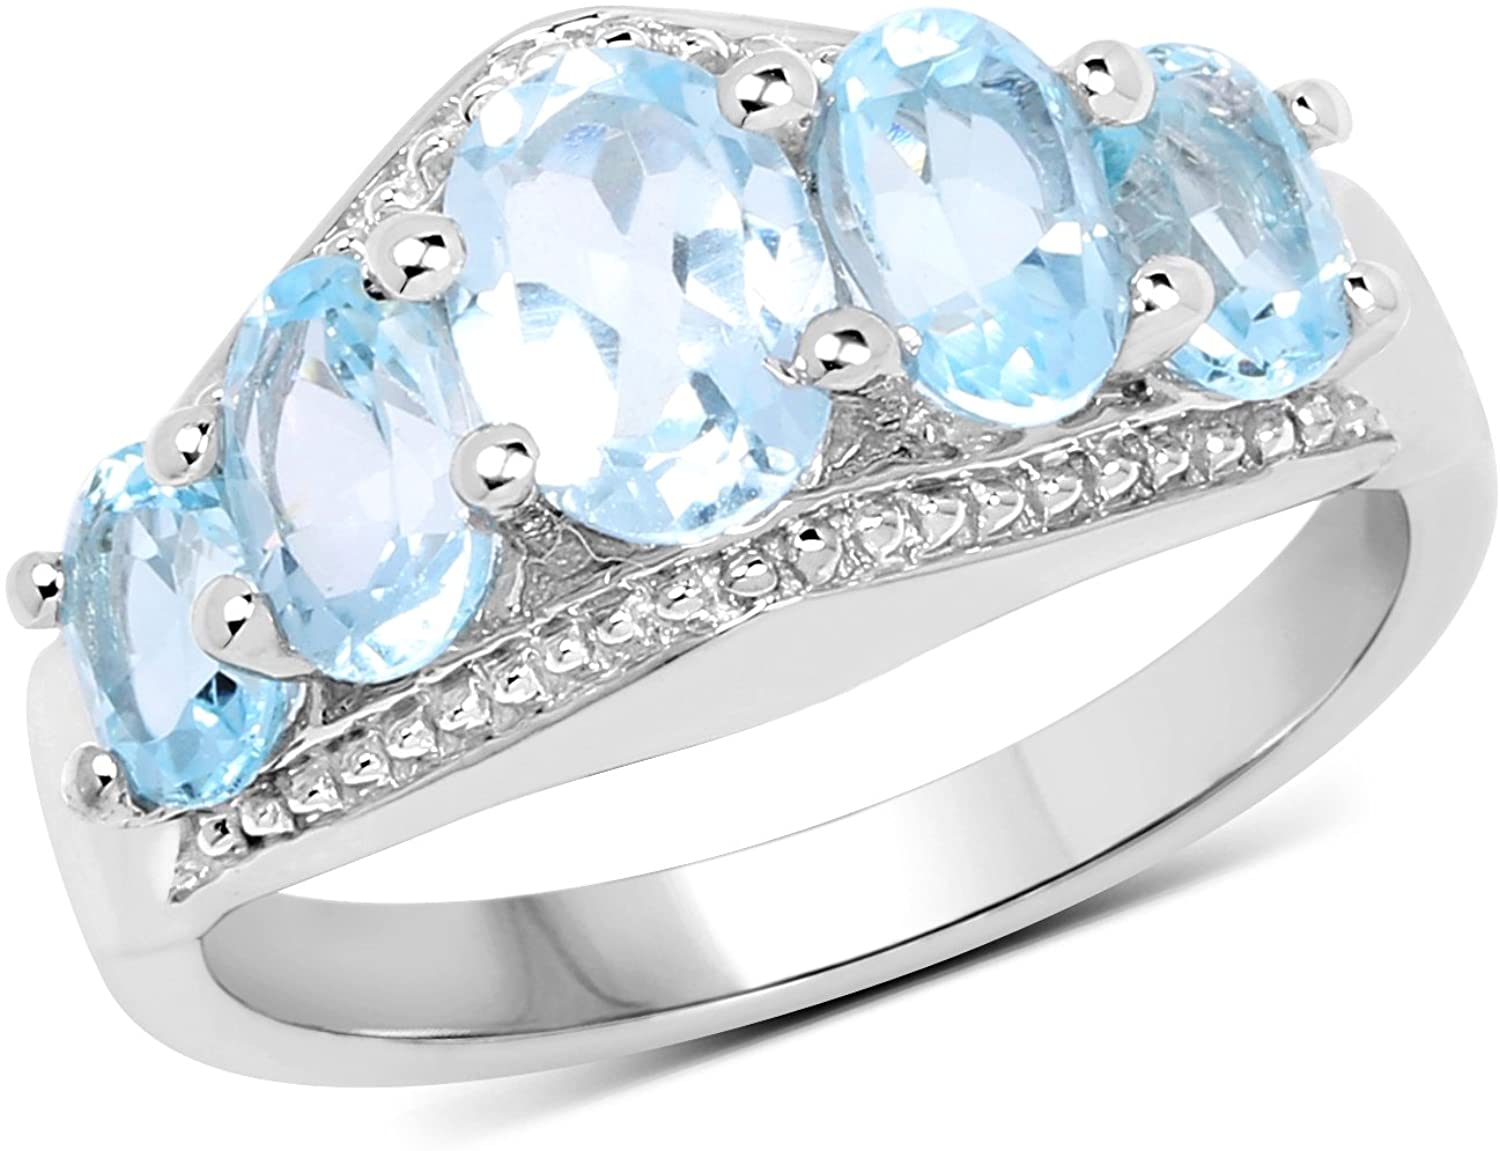 Huang and Co. 2.42 Carats Genuine Blue Topaz Ring Solid .925 Sterling Silver with Rhodium Plating